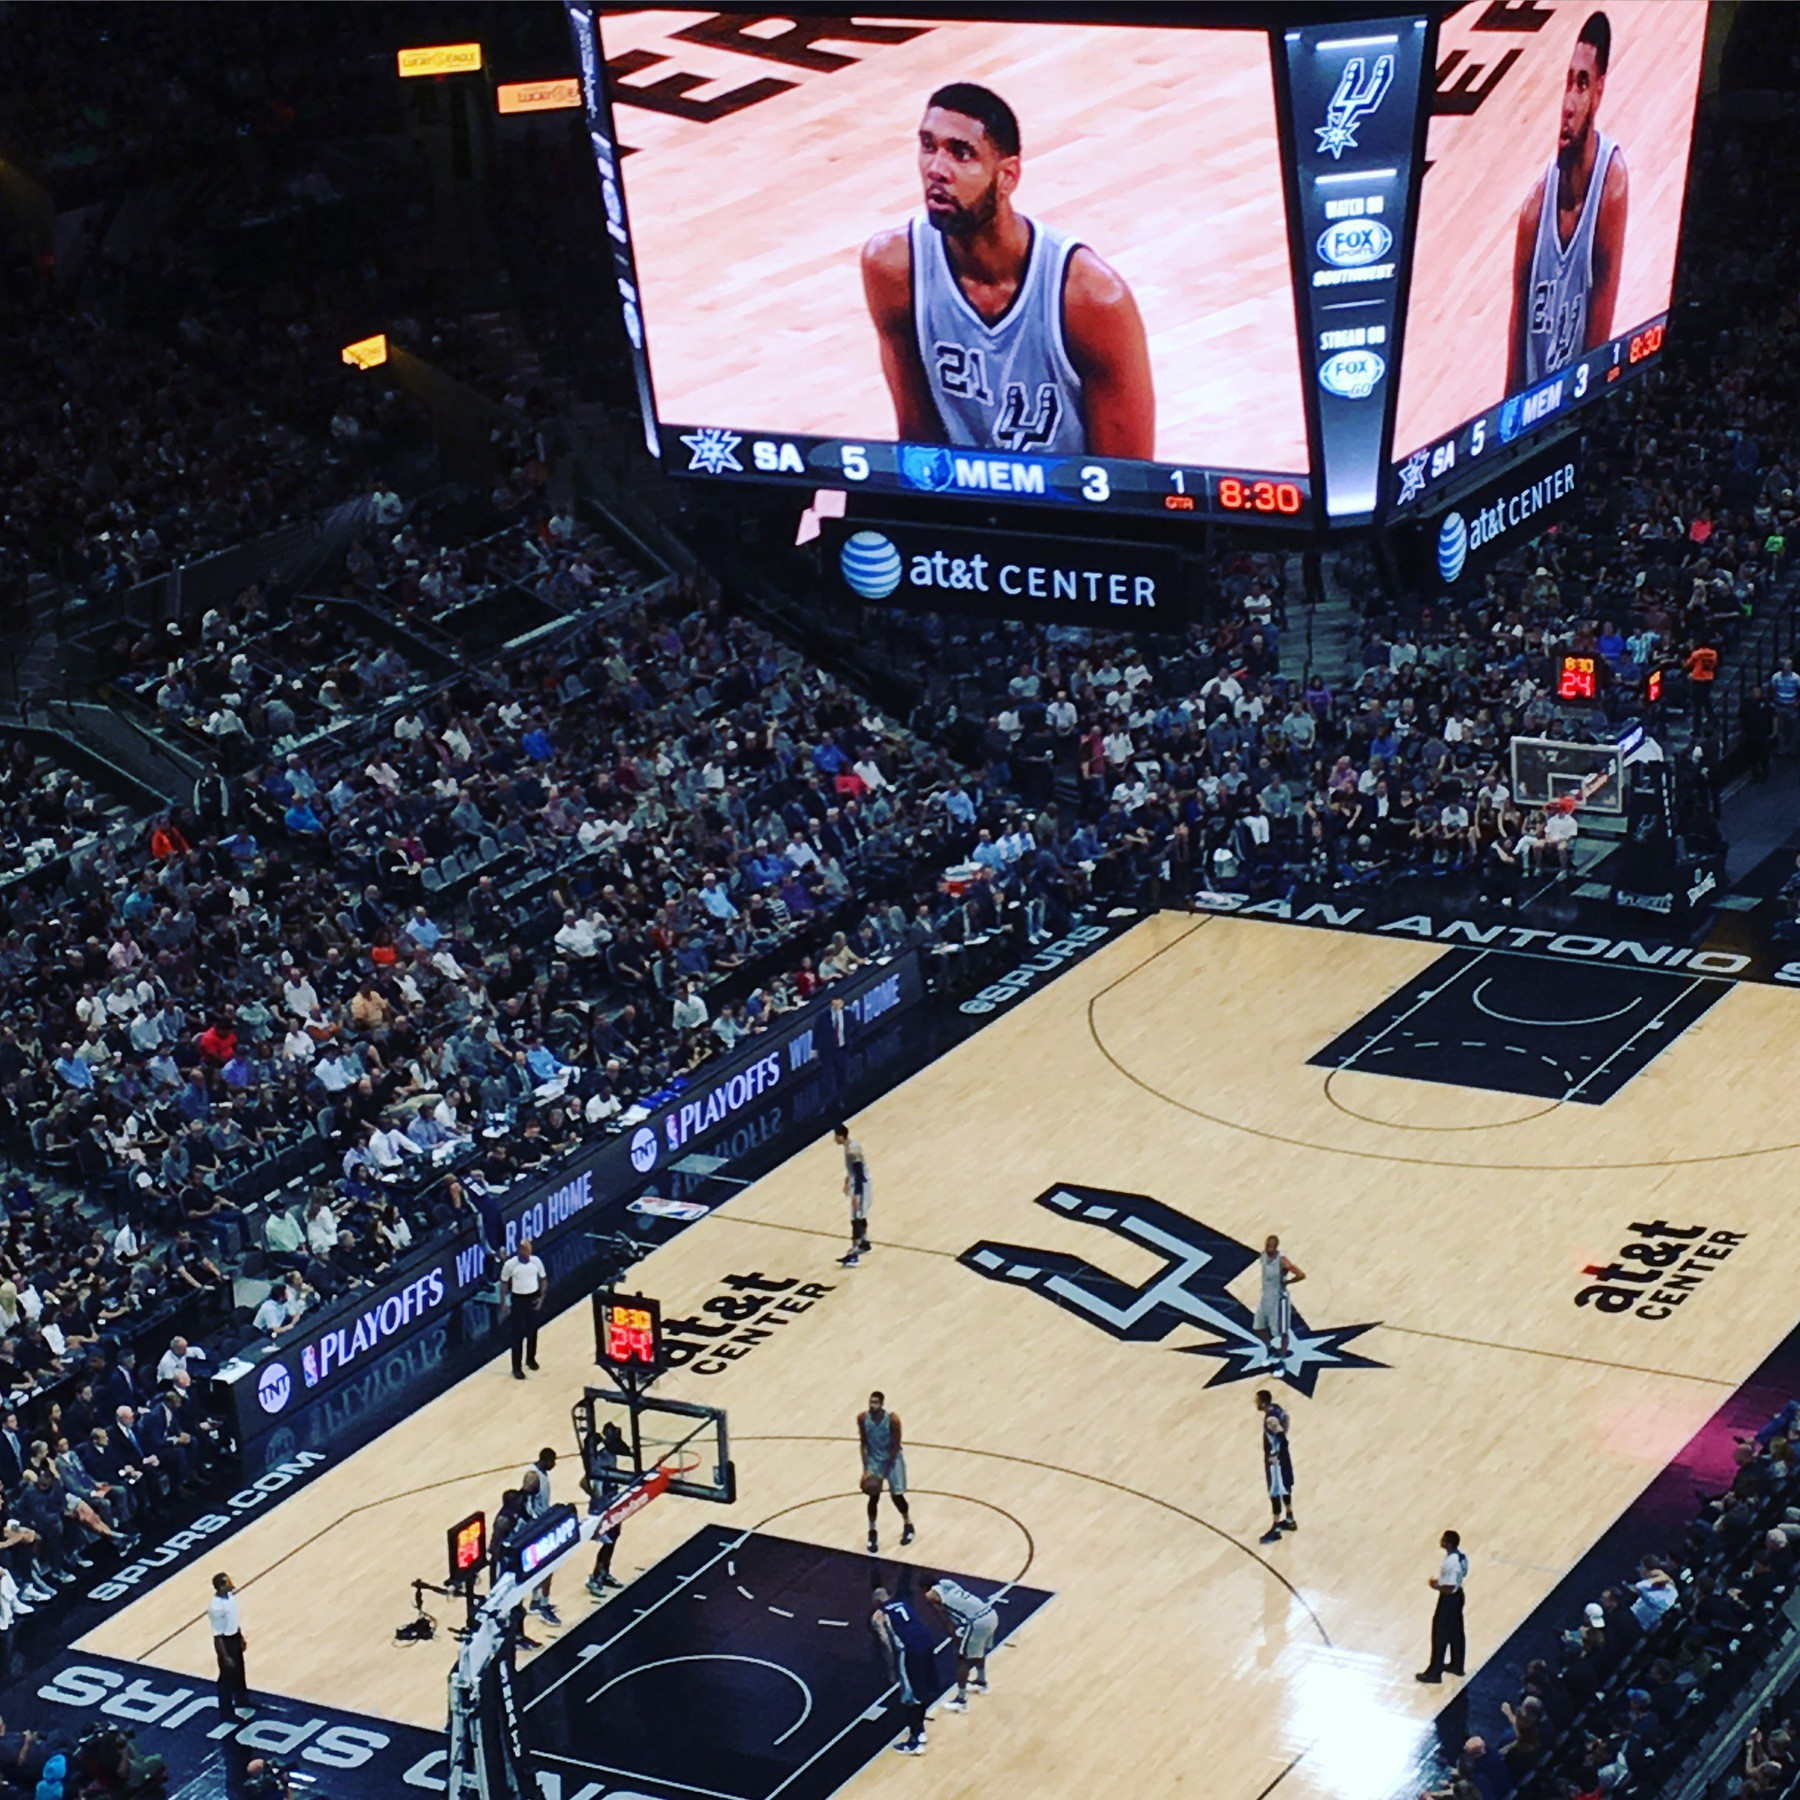 Spurs vs. Grizzlies, game 1